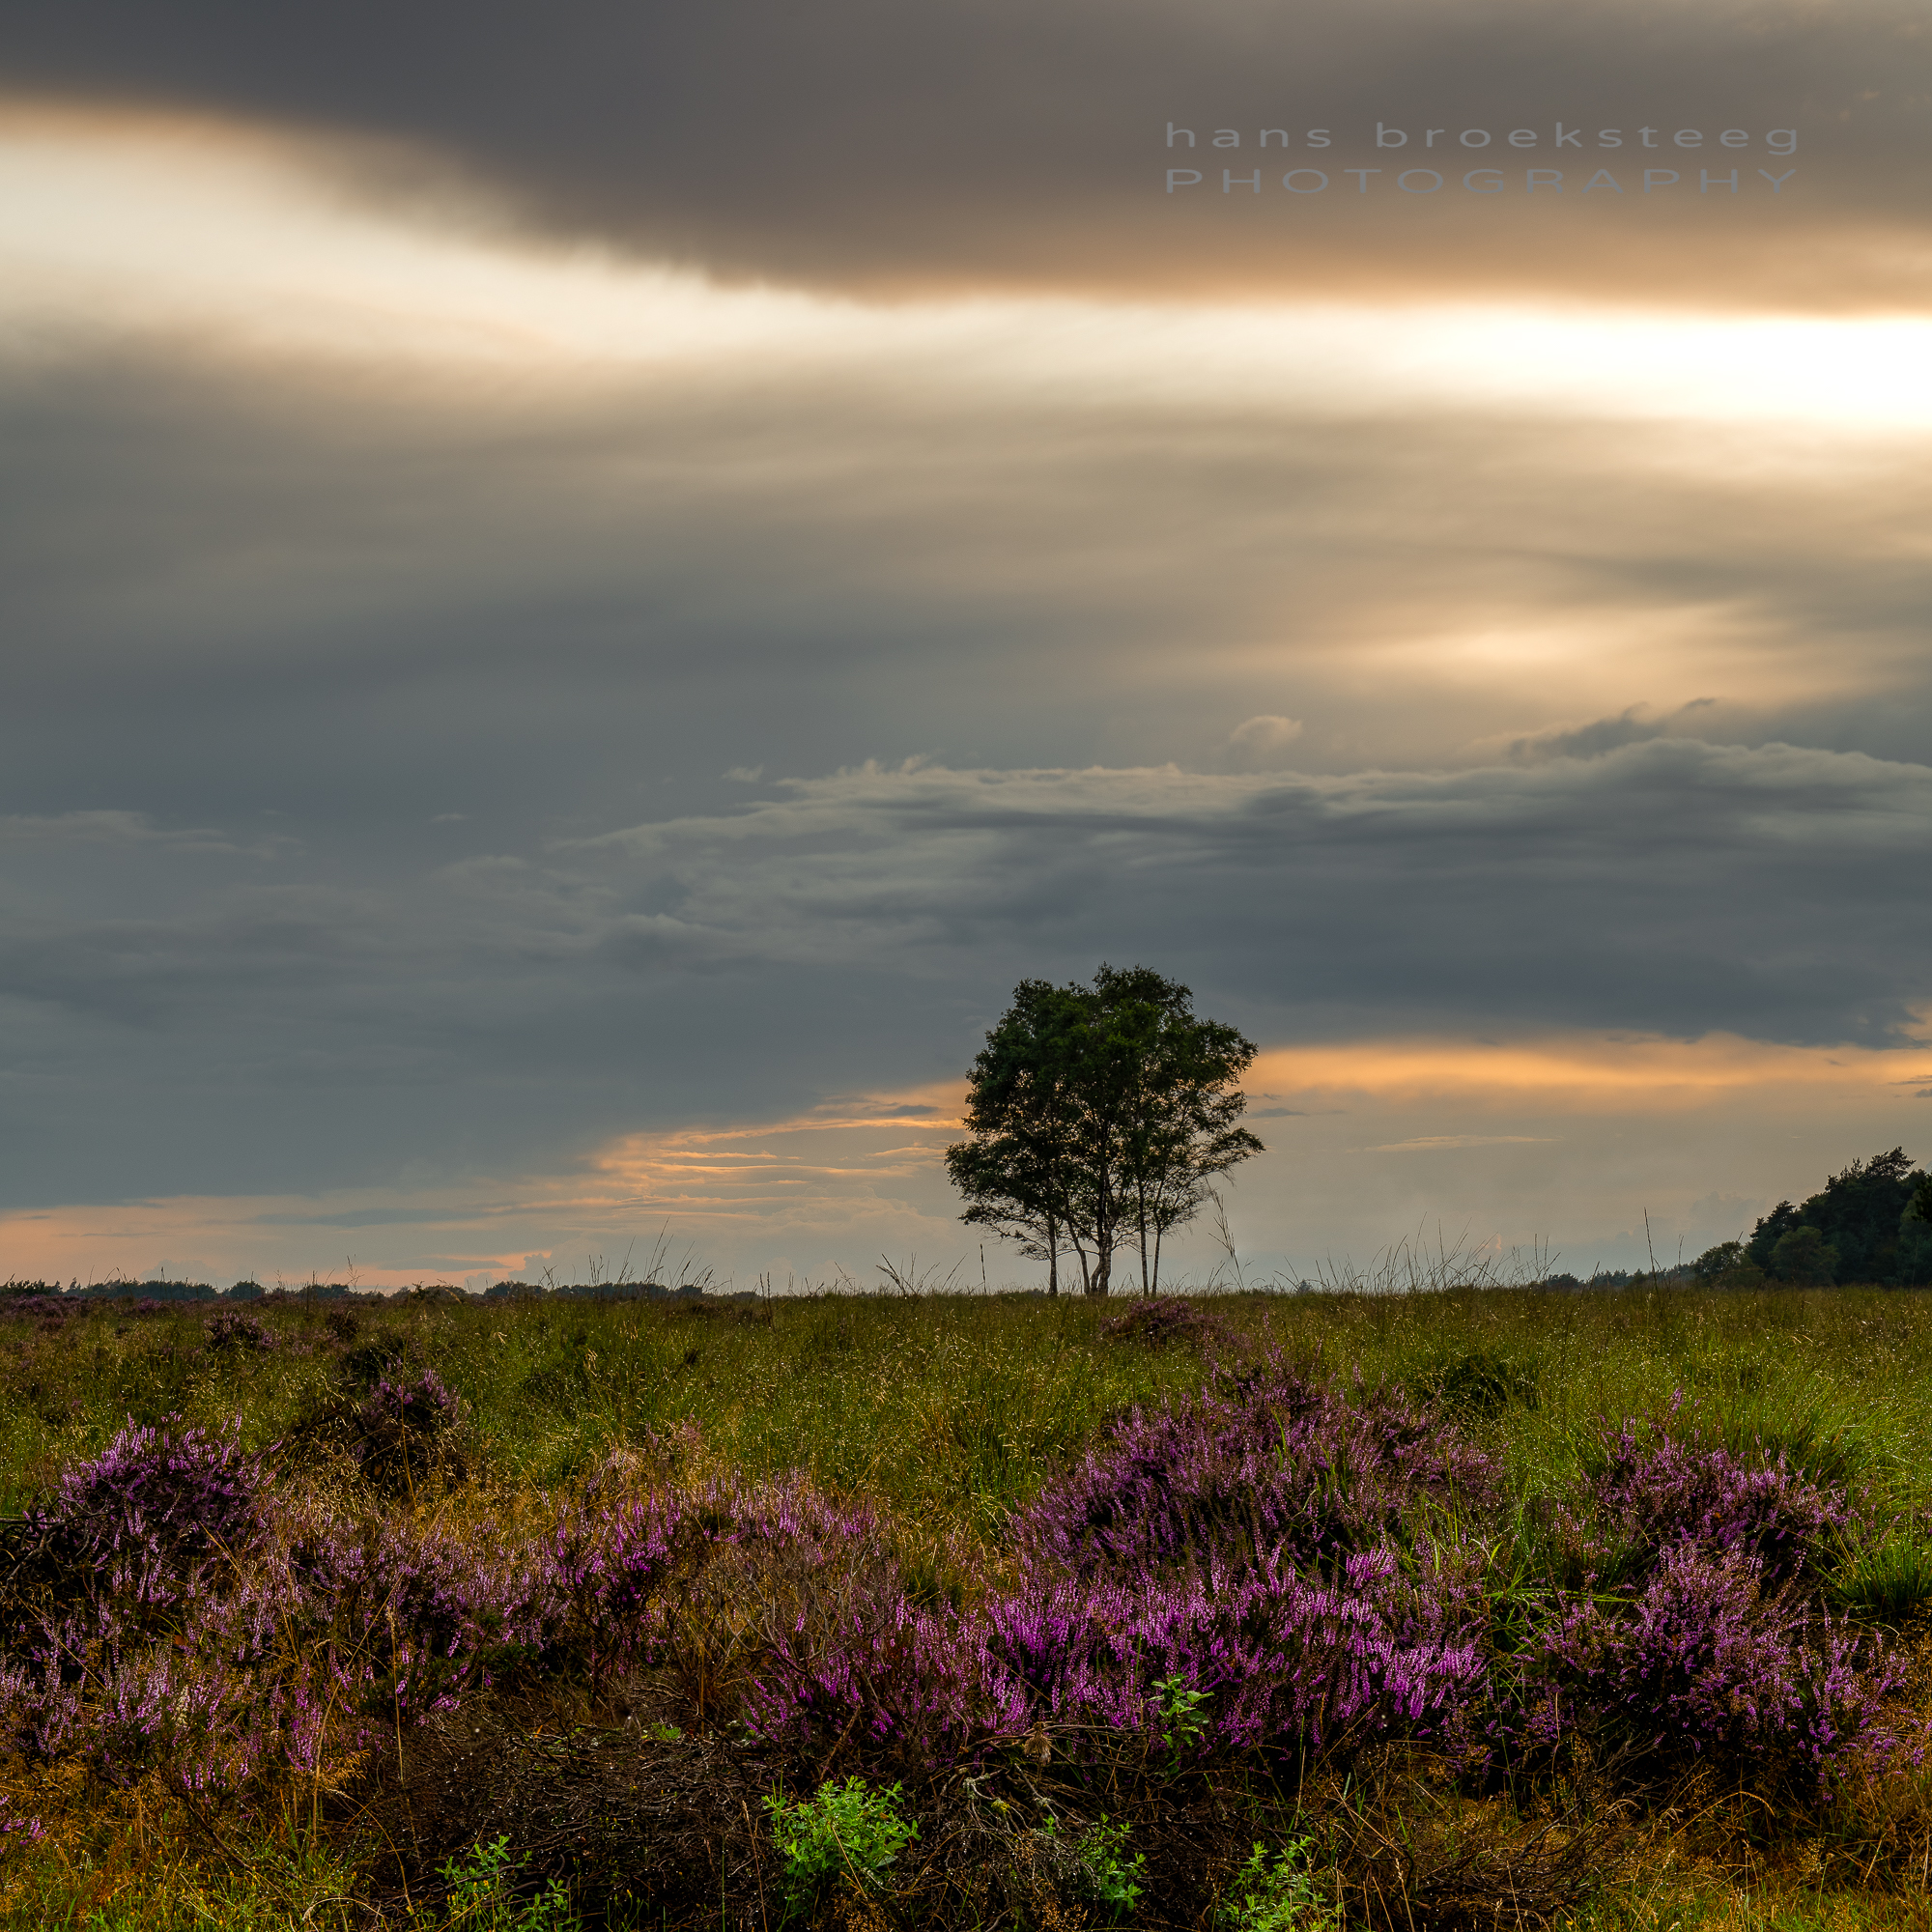 Blooming heather at sunset